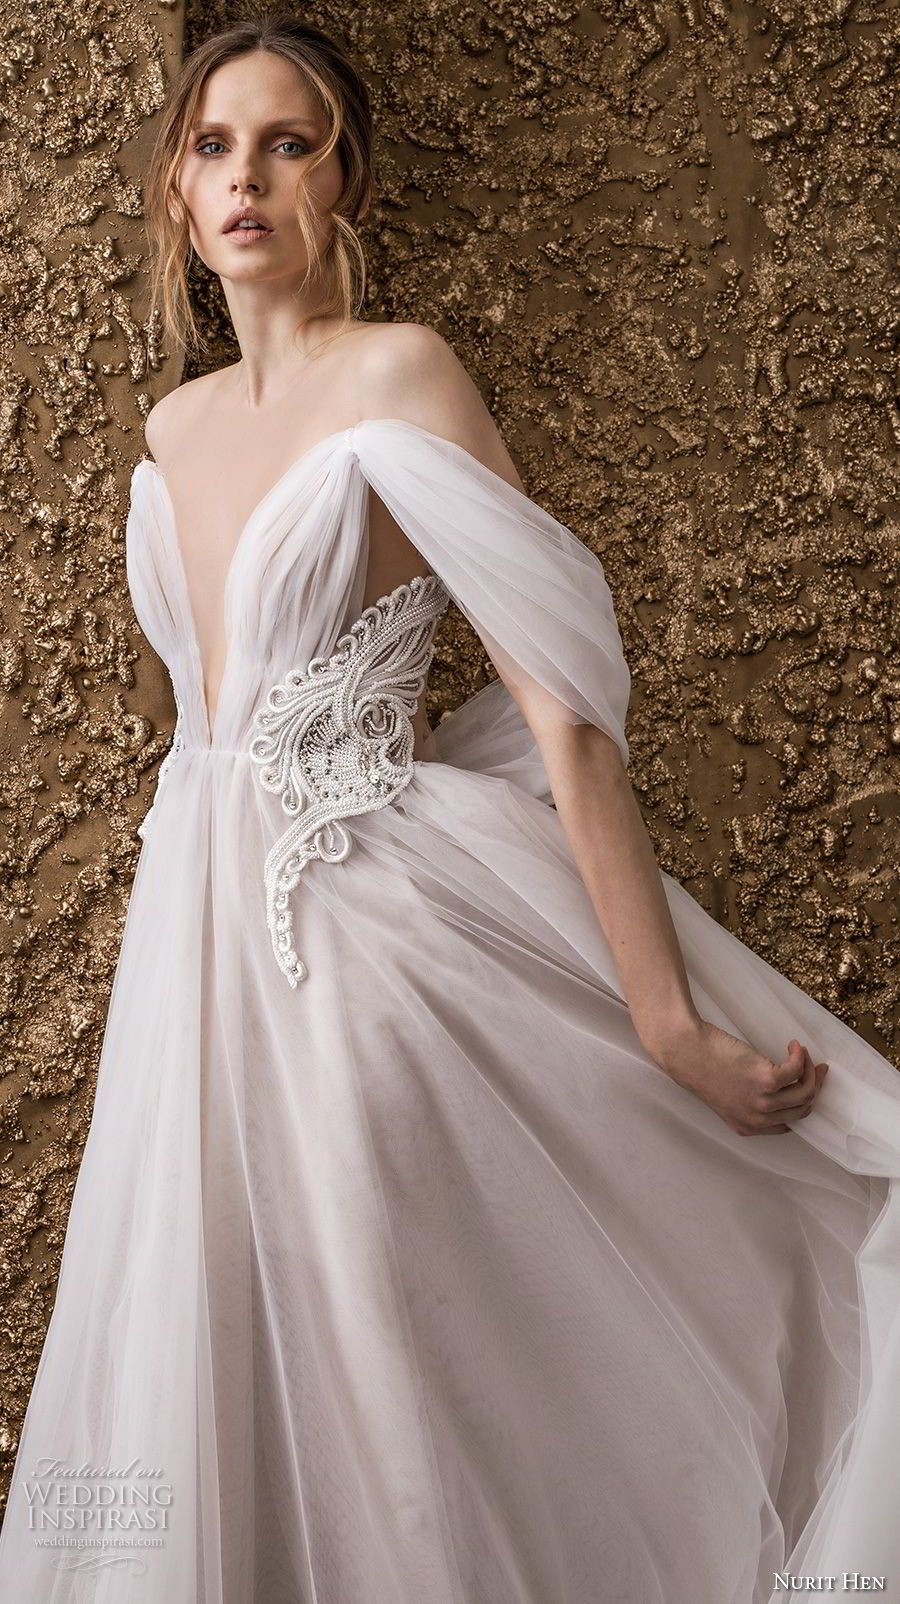 39+ Off the shoulder a line ruched country wedding dress ideas in 2021